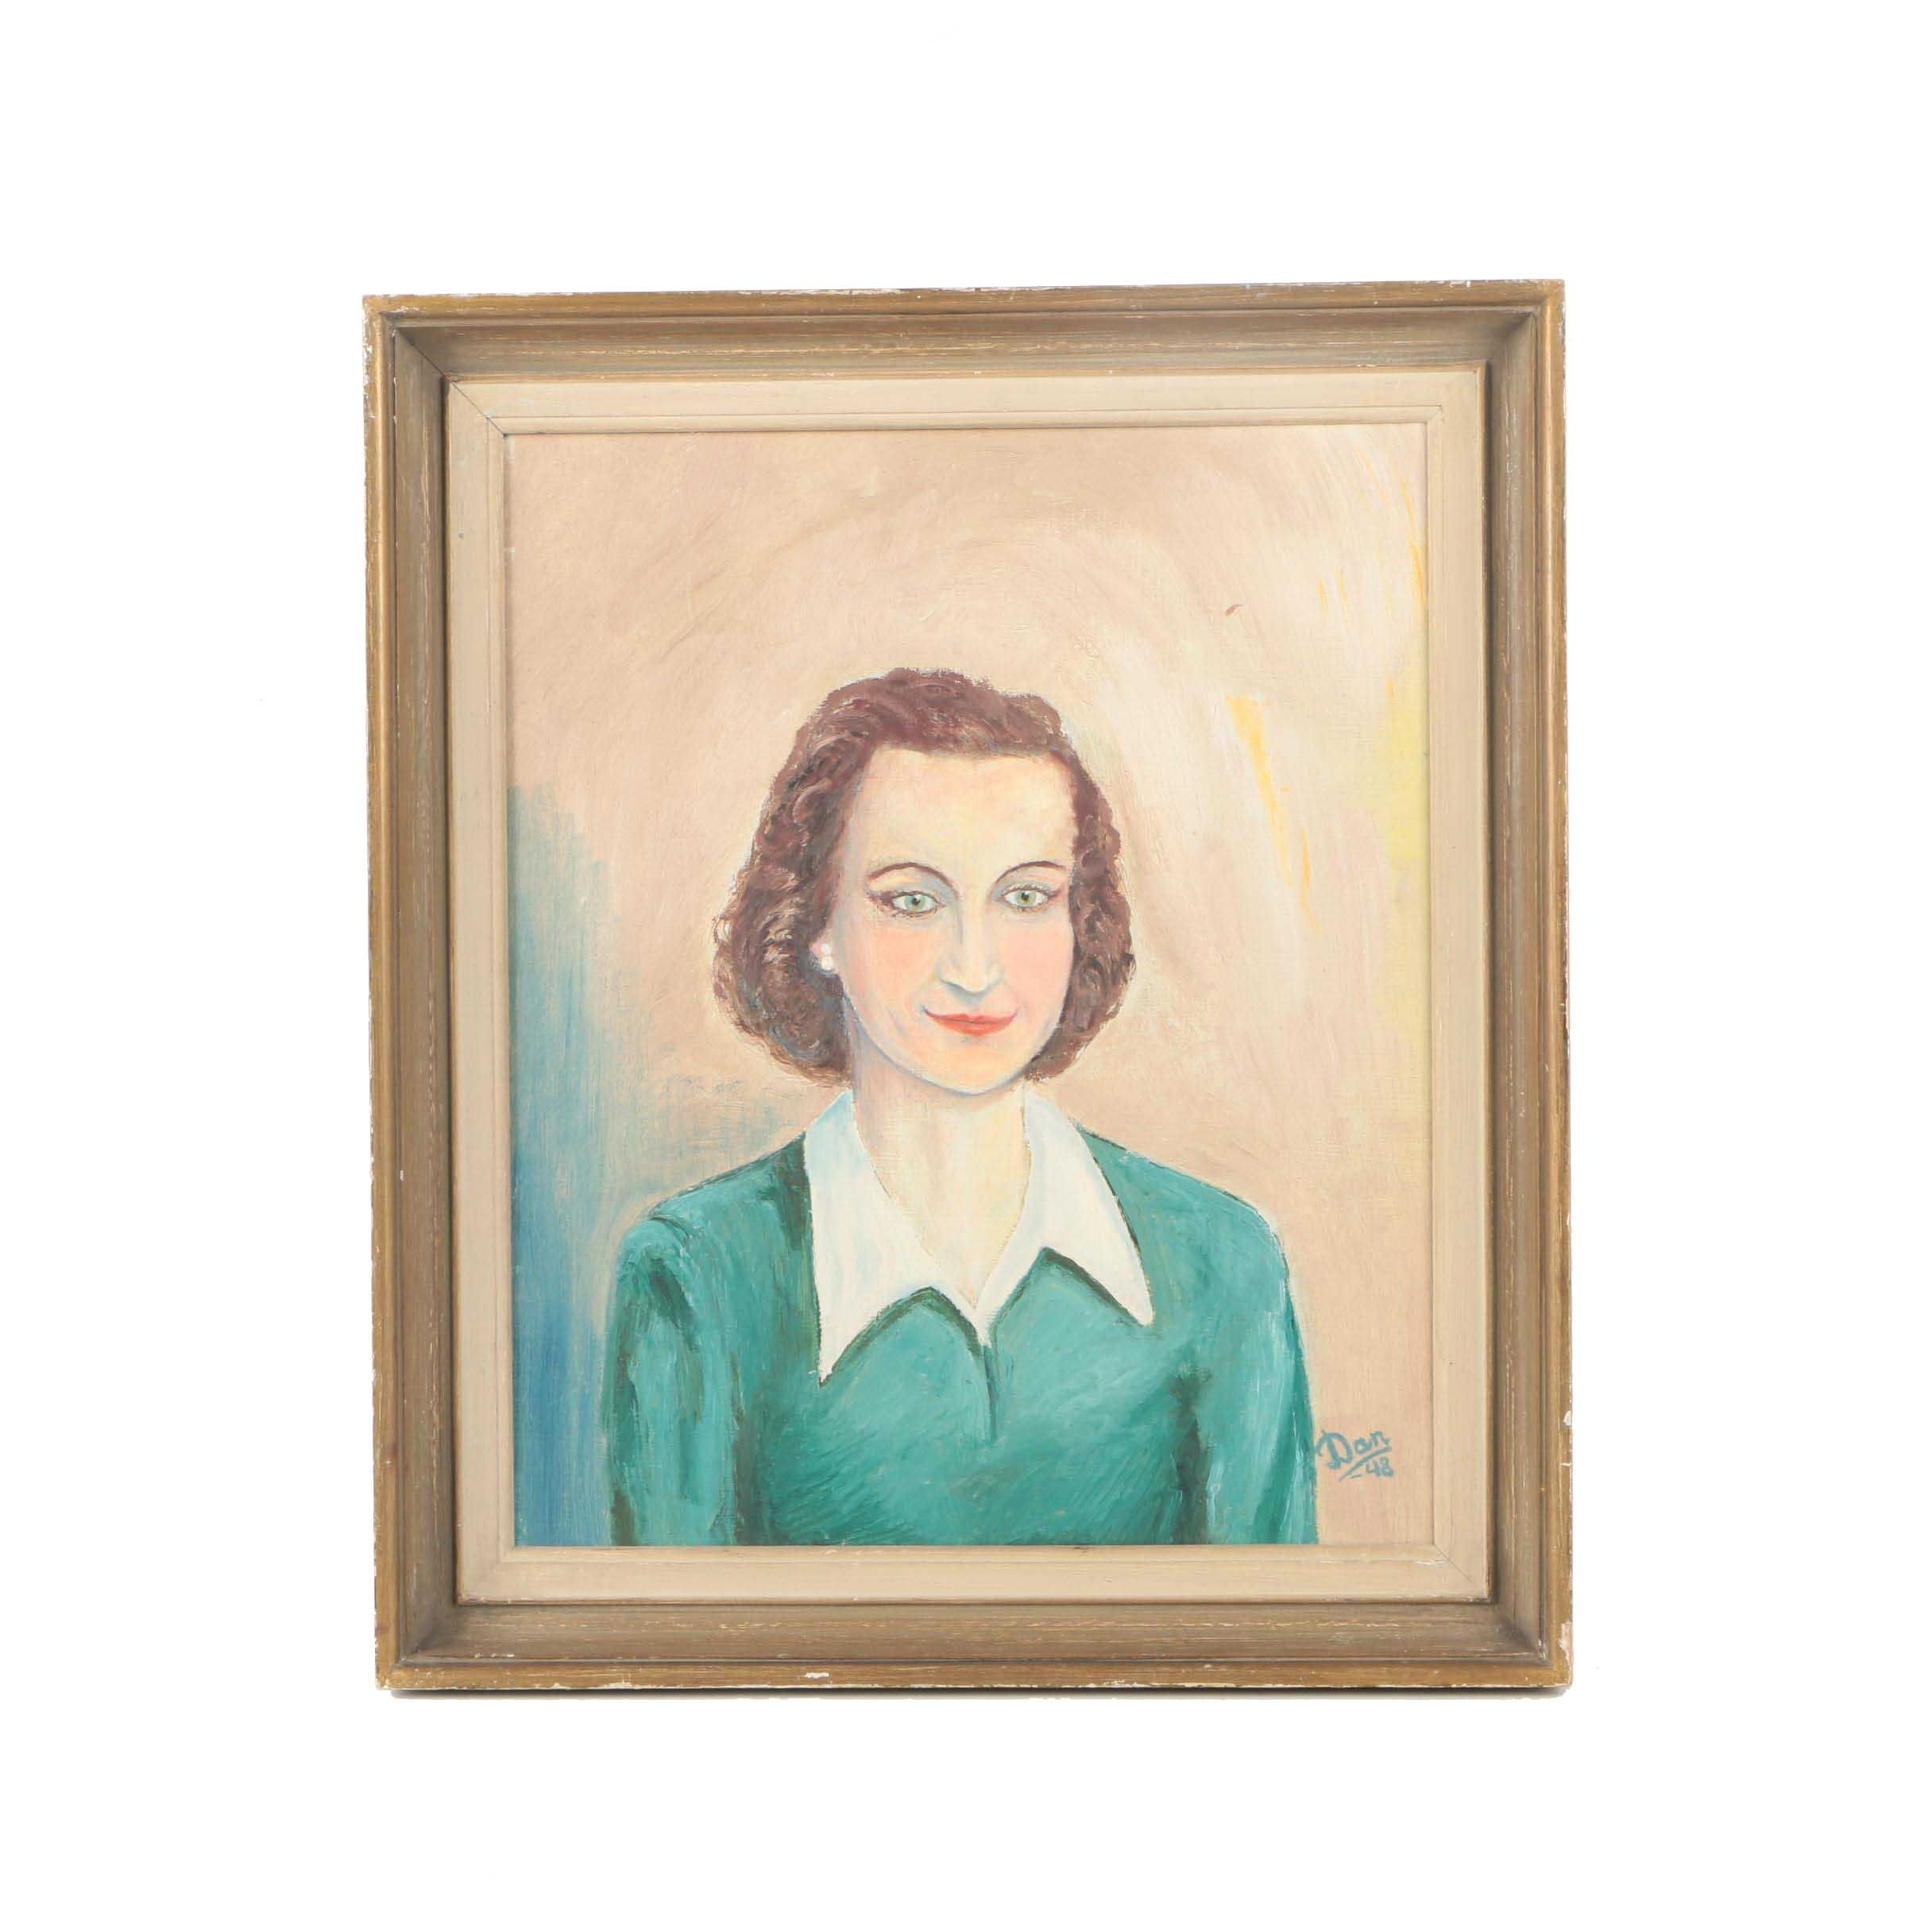 Dan Oil Painting on Canvas Board Portrait of a Woman